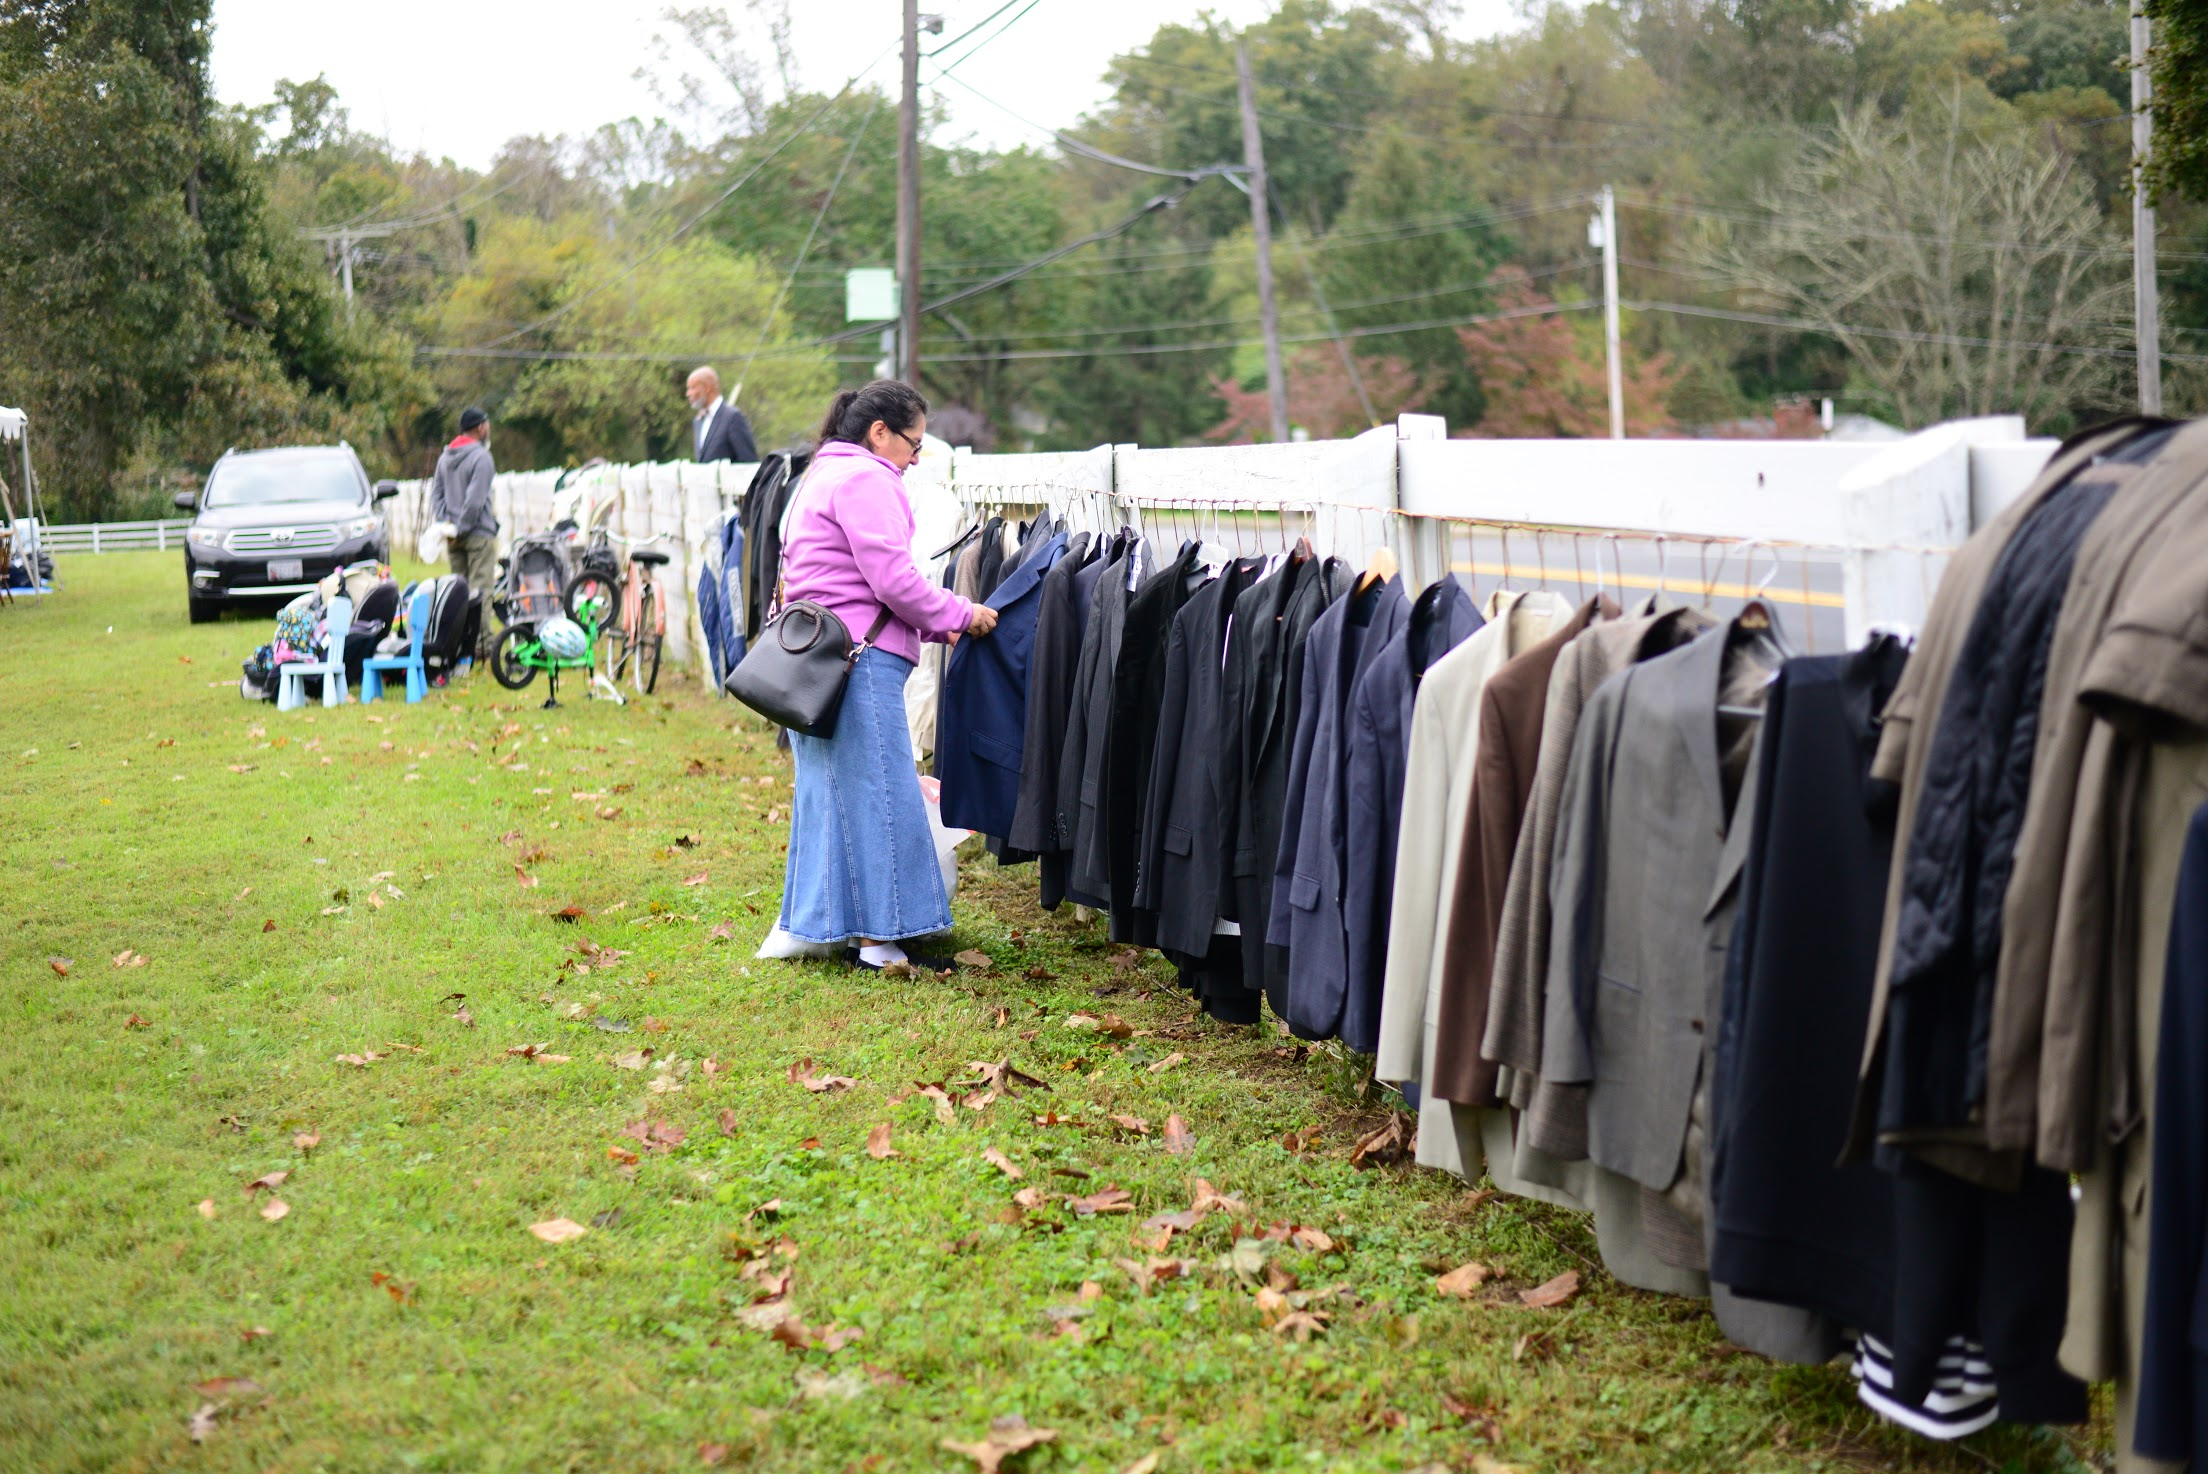 Each year Brinklow church organizes a free yard giveaway for the public (Photo: Sheldon Kennedy)